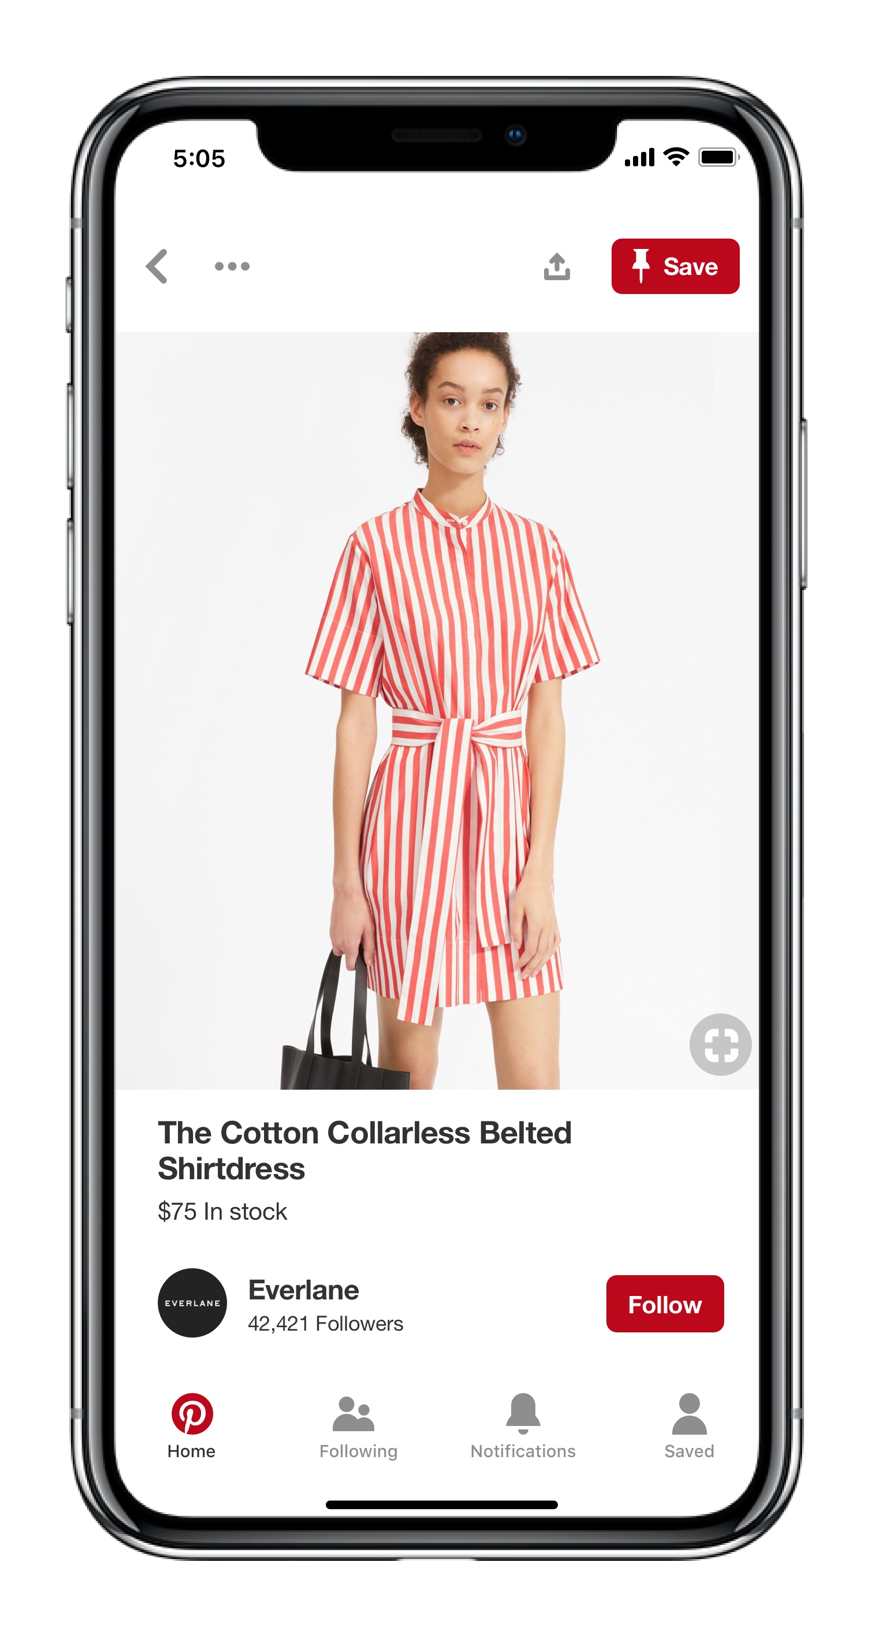 New features for Product Pins - Pinterest added dynamic pricing and stock information for Product Pins